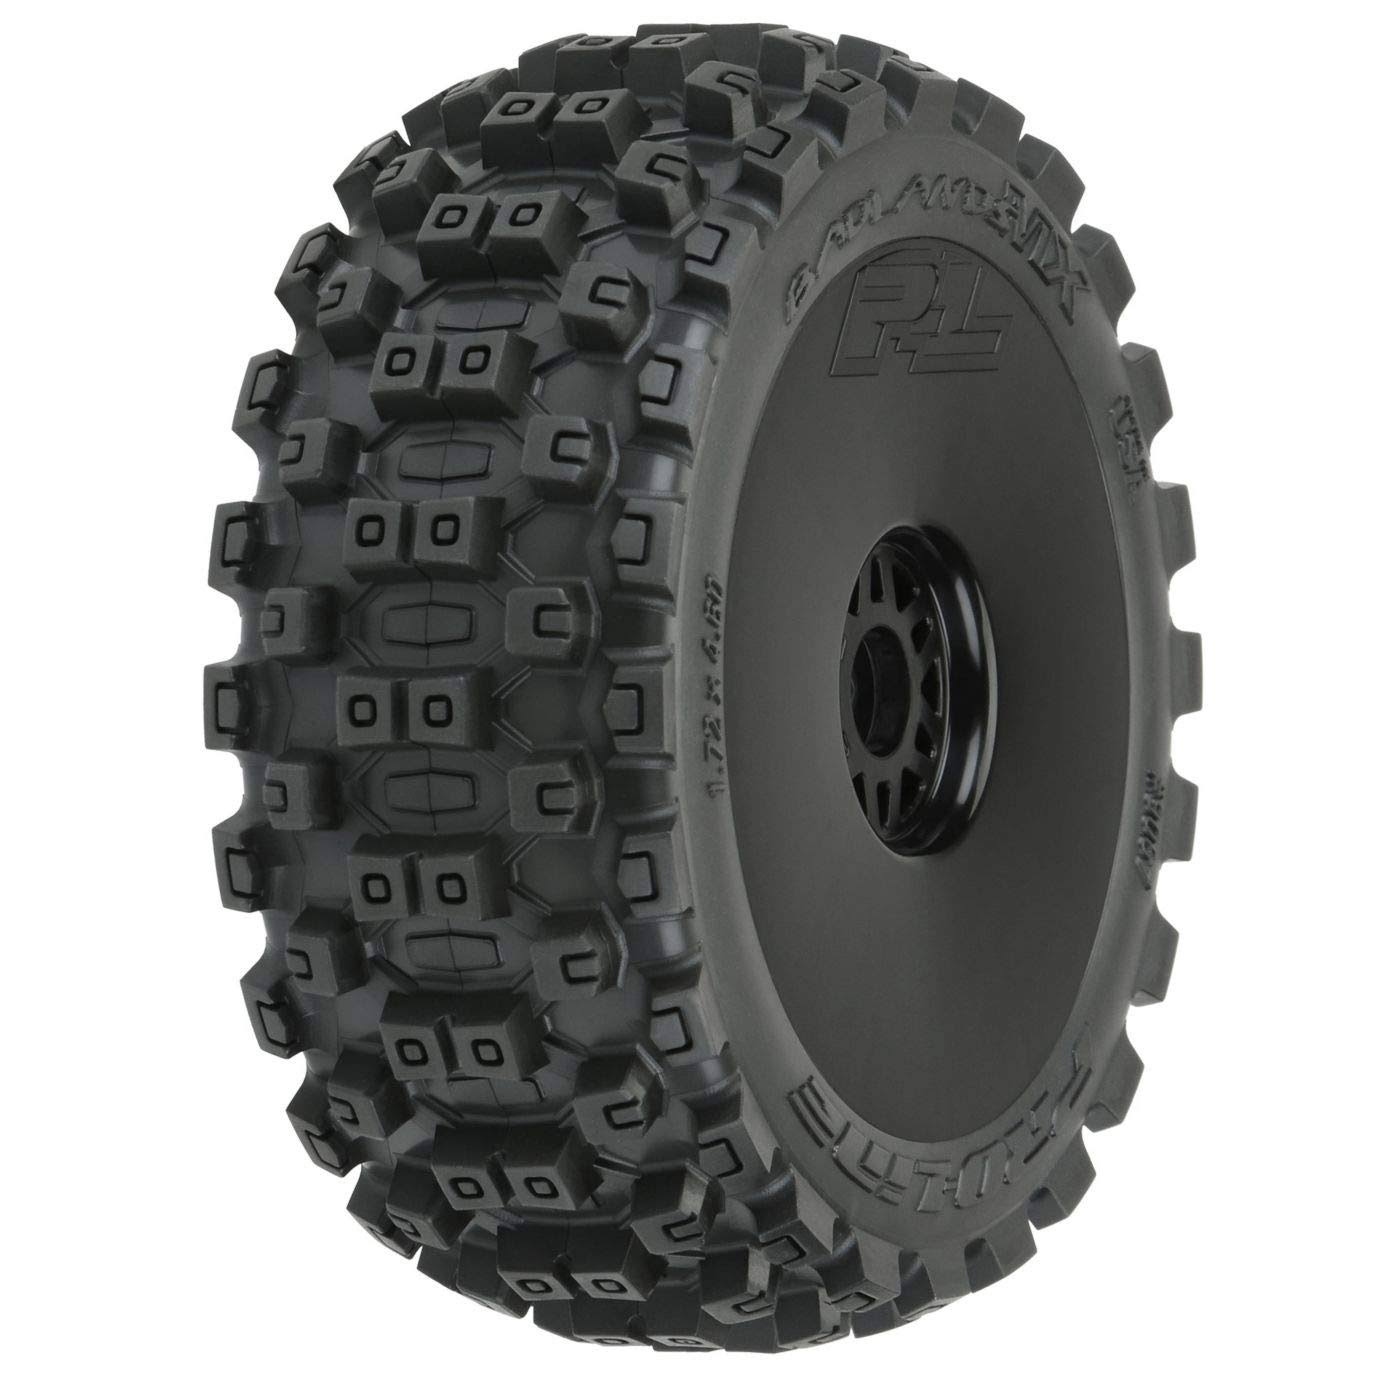 Pro Lline Racing Rc Model Vehicle Parts 9067 41 Badlands MX M2 Medium All Terrain Mounted Tires - Black, 1:8 Scale